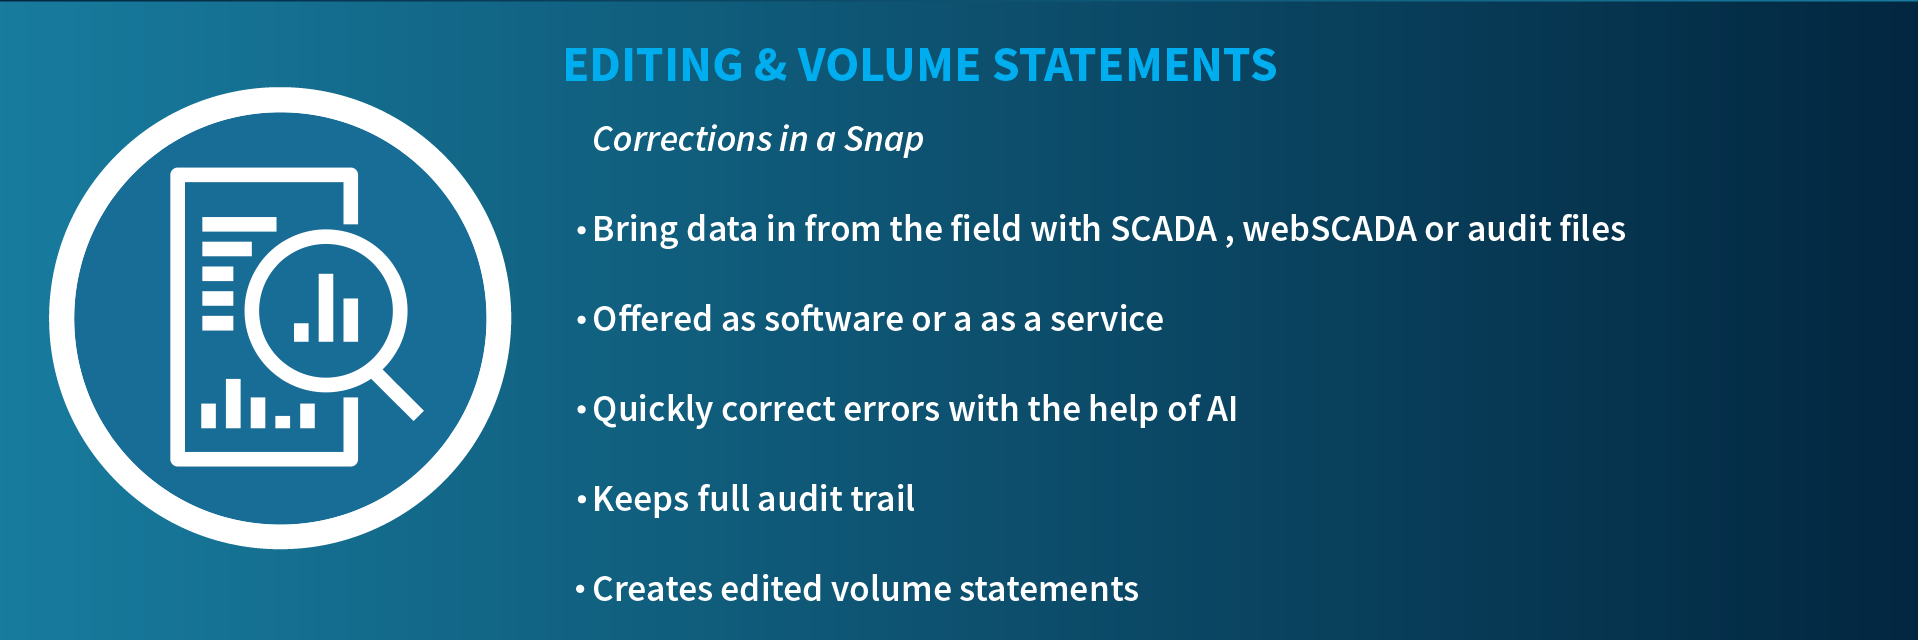 Editing Volume Statements-01.png